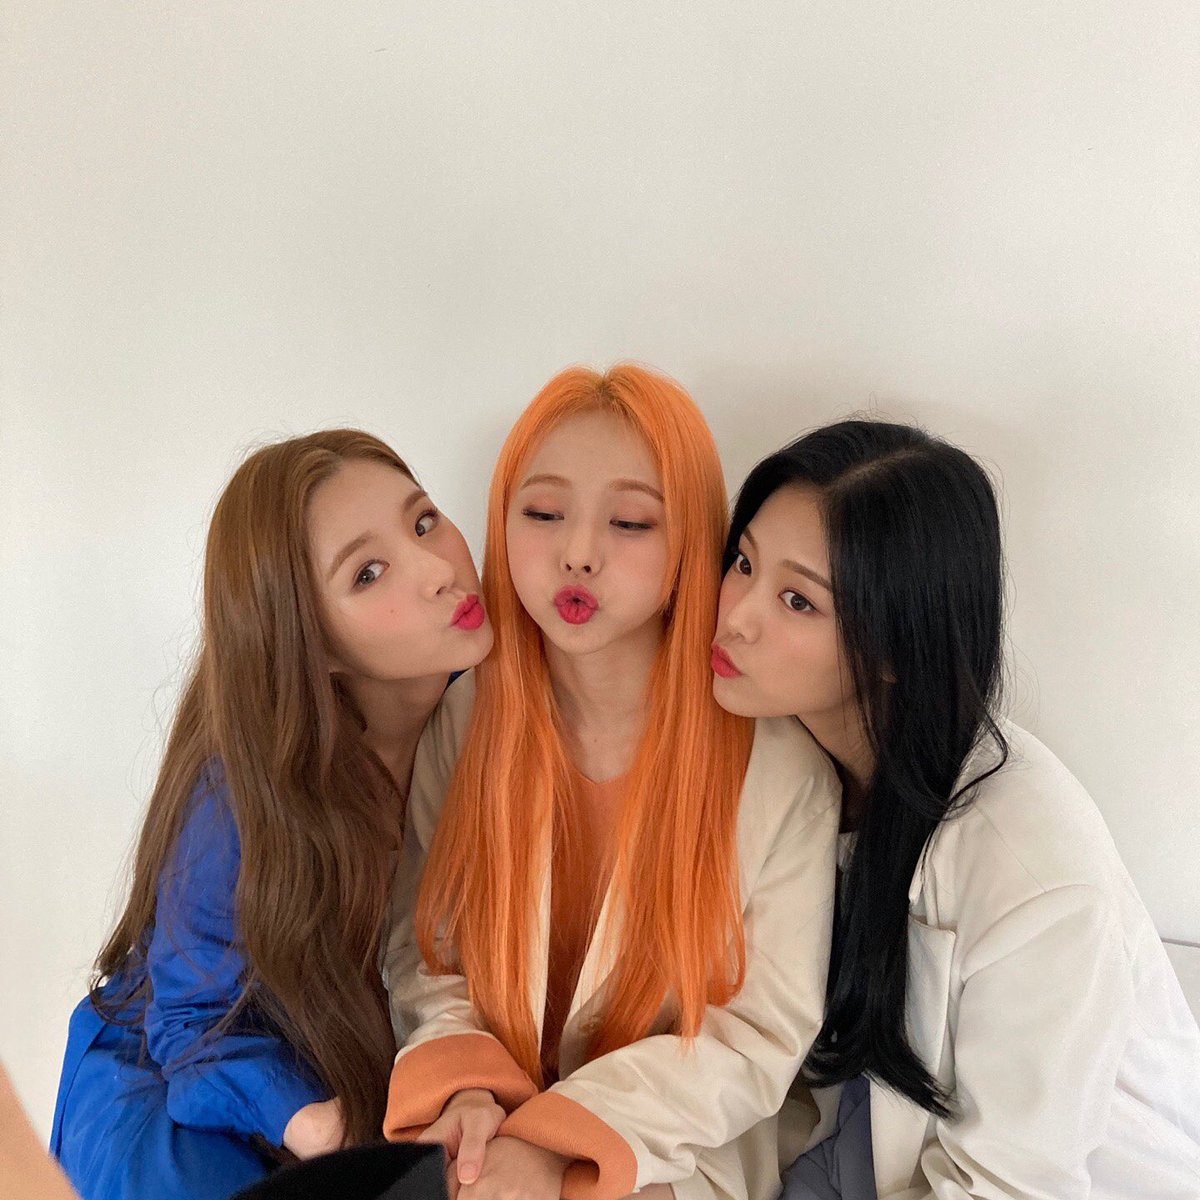 #MostRequestedLive starts in less than 1 hour, can we take #LOONA_Star back at song of the night? Let's do our best! Follow @loonatheradio for updates and stuff.  @loonatheworld #LOONA